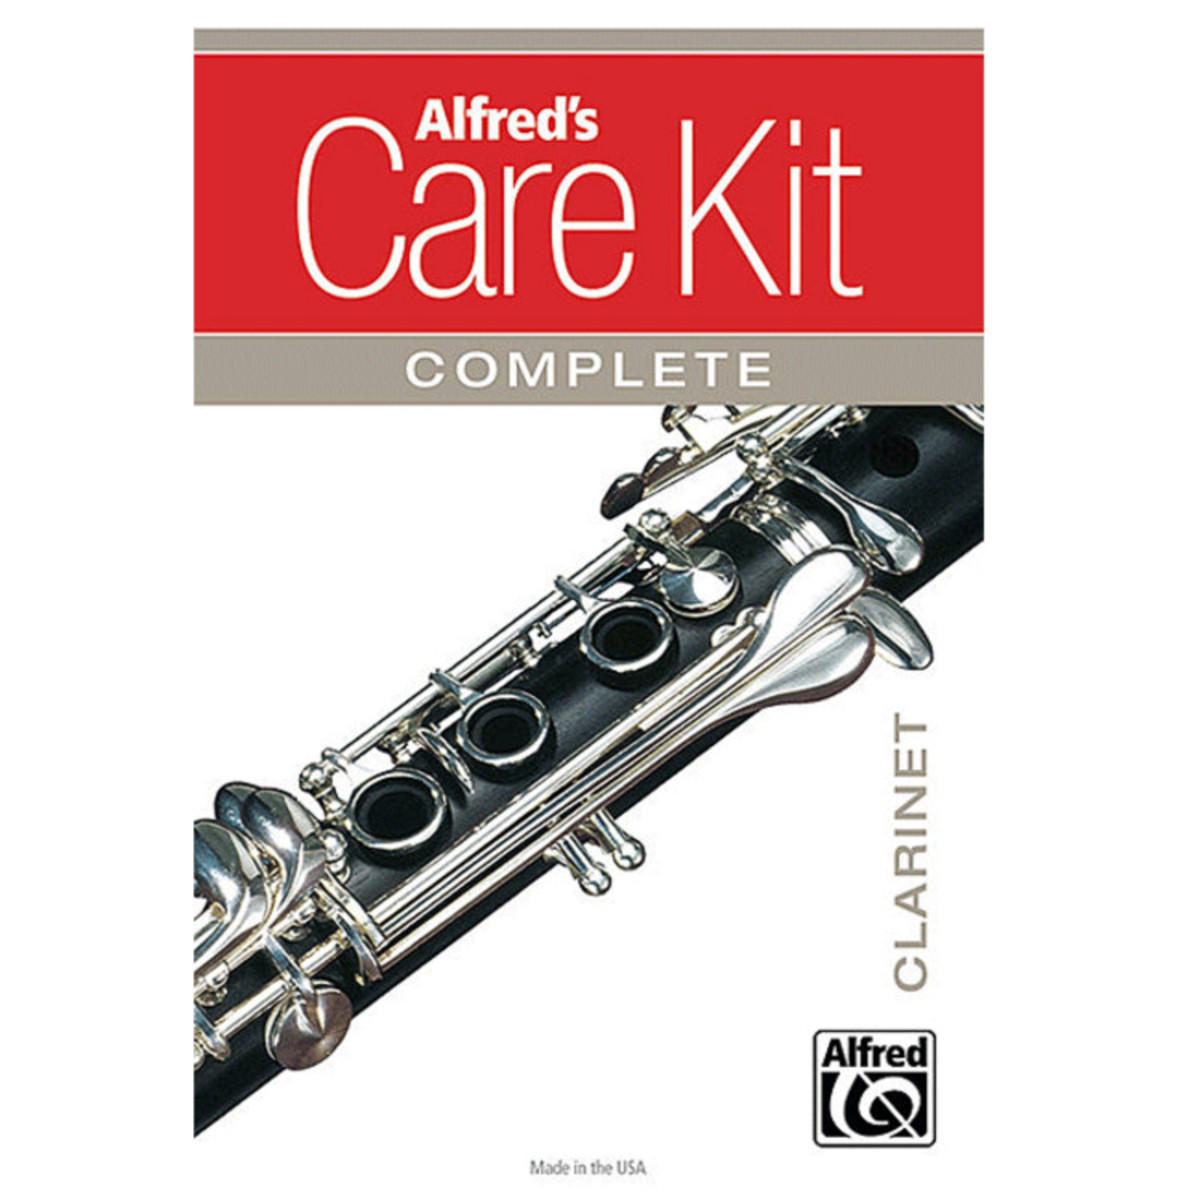 Alfreds Complete Clarinet Care Kit